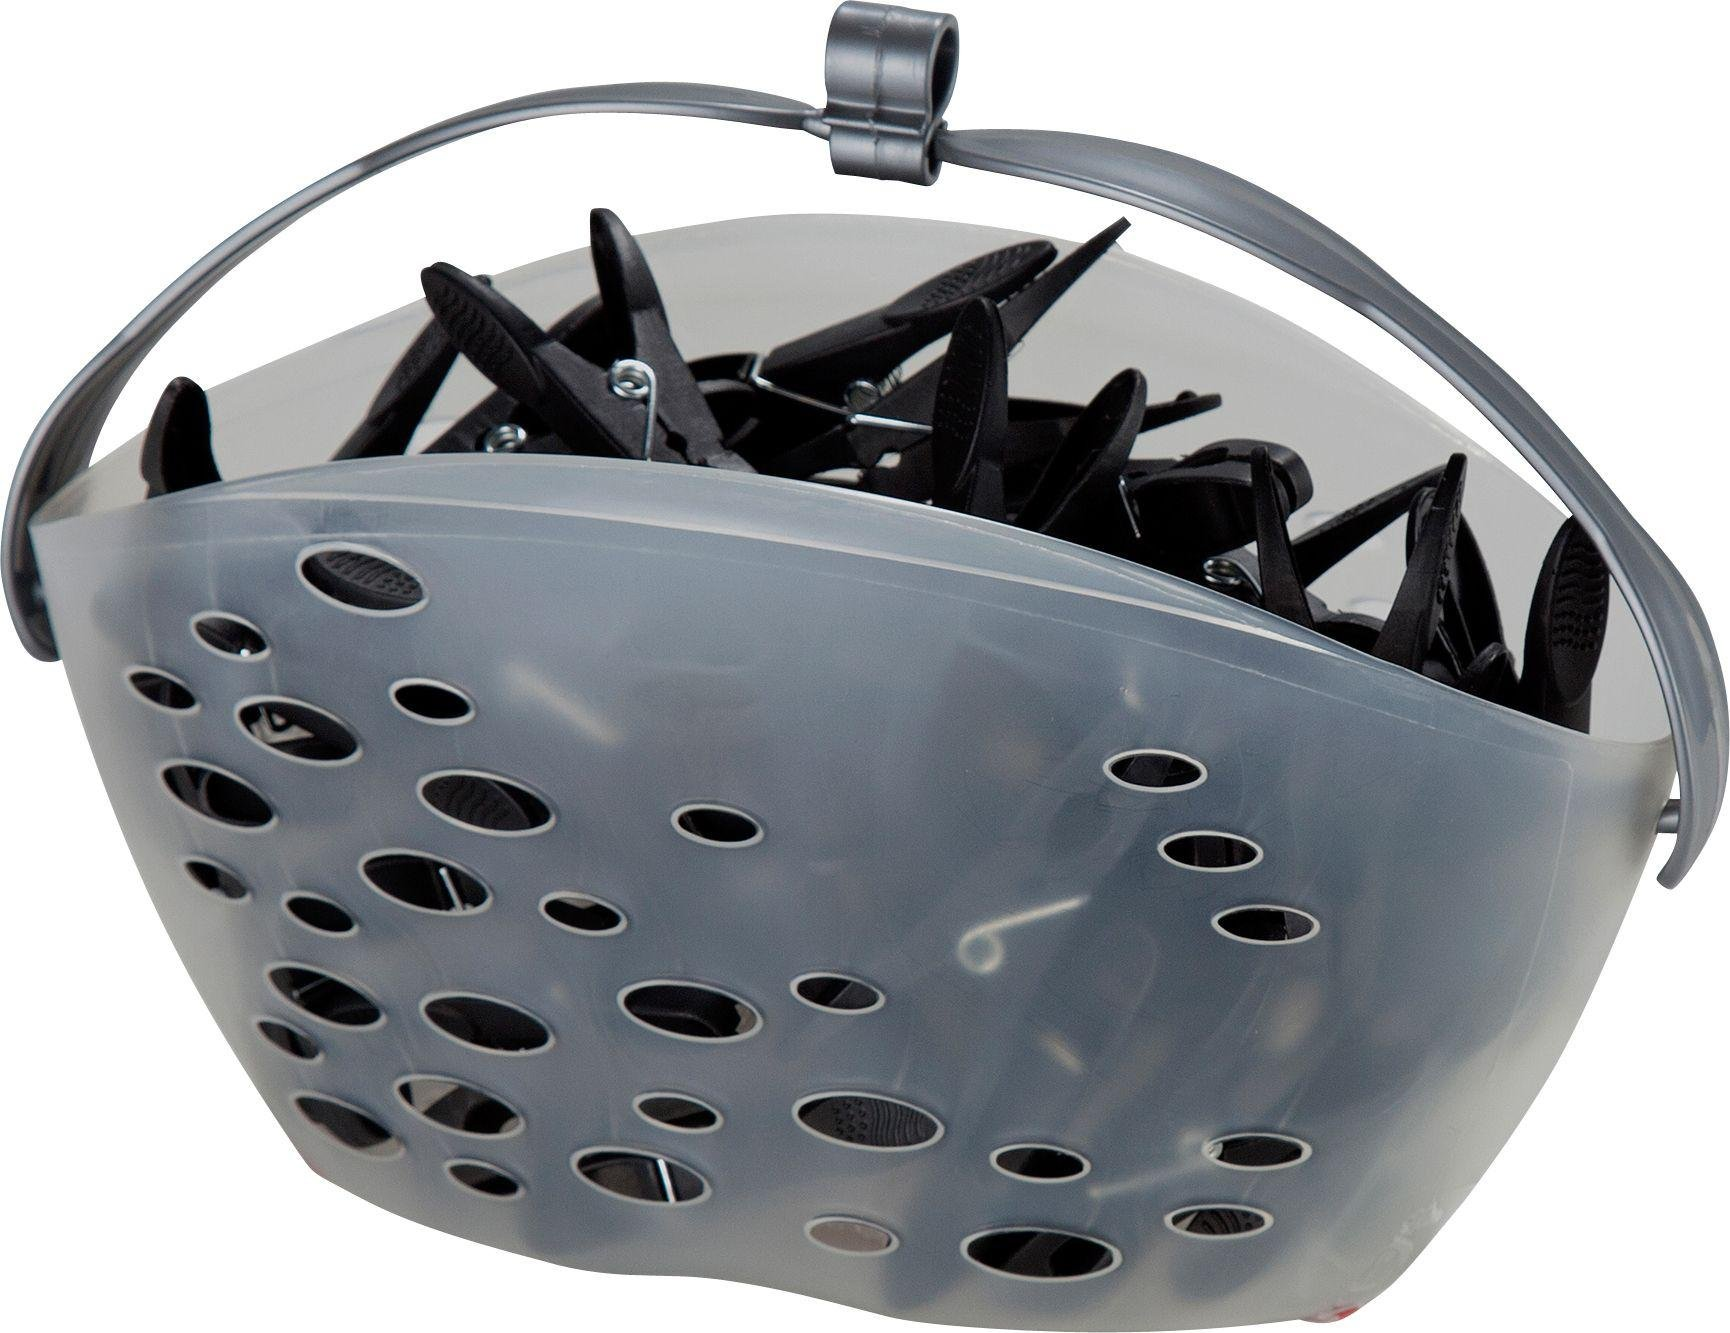 Image of Better Home Set of 50 Clothes Pegs & Basket